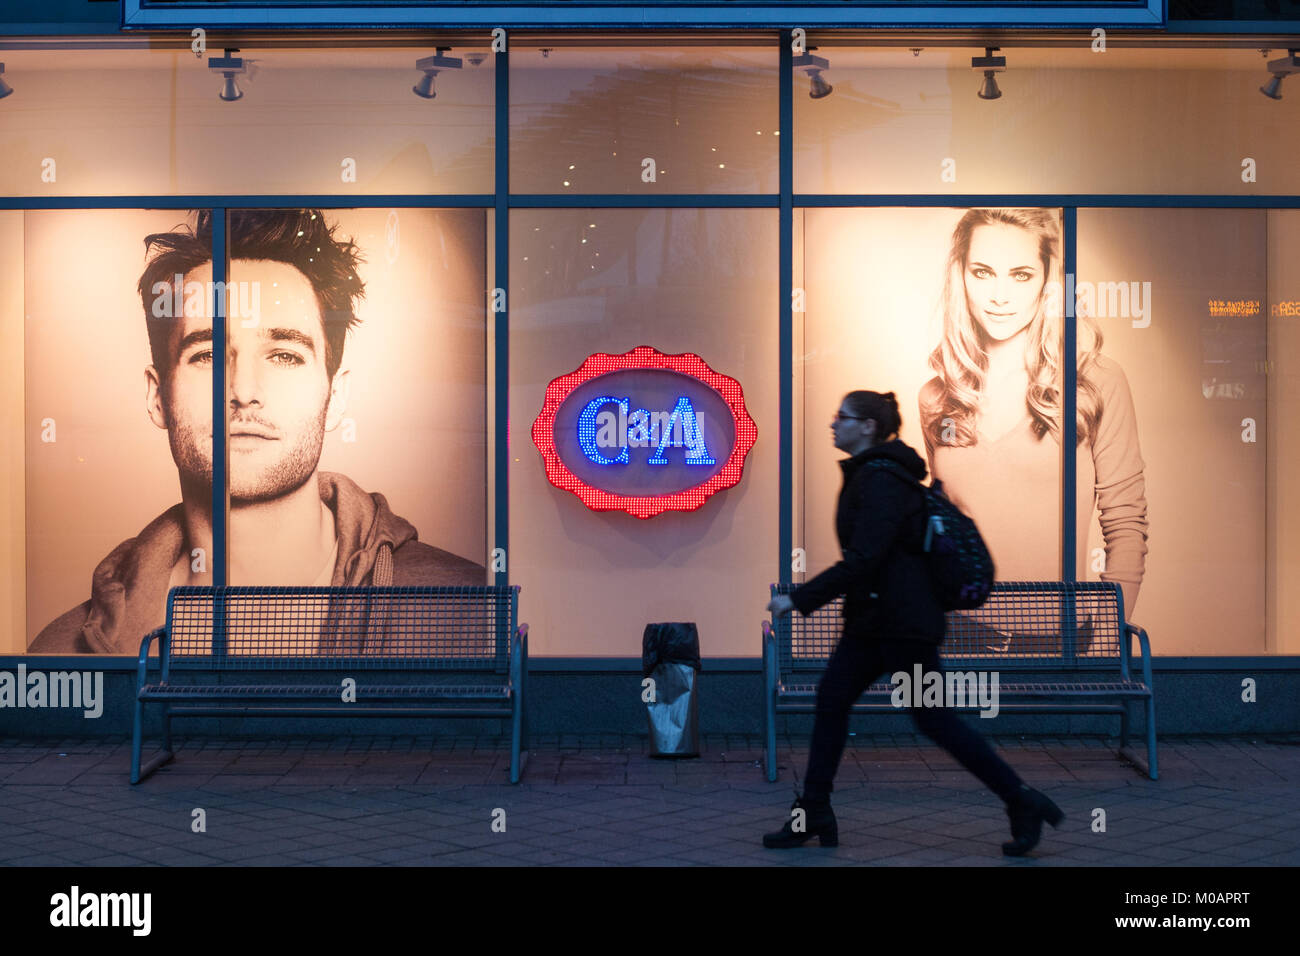 BUDAPEST, HUNGARY - Jan 09, 2018: C&A logo on a store in Budapest. C&A is an international chain of fast - Stock Image